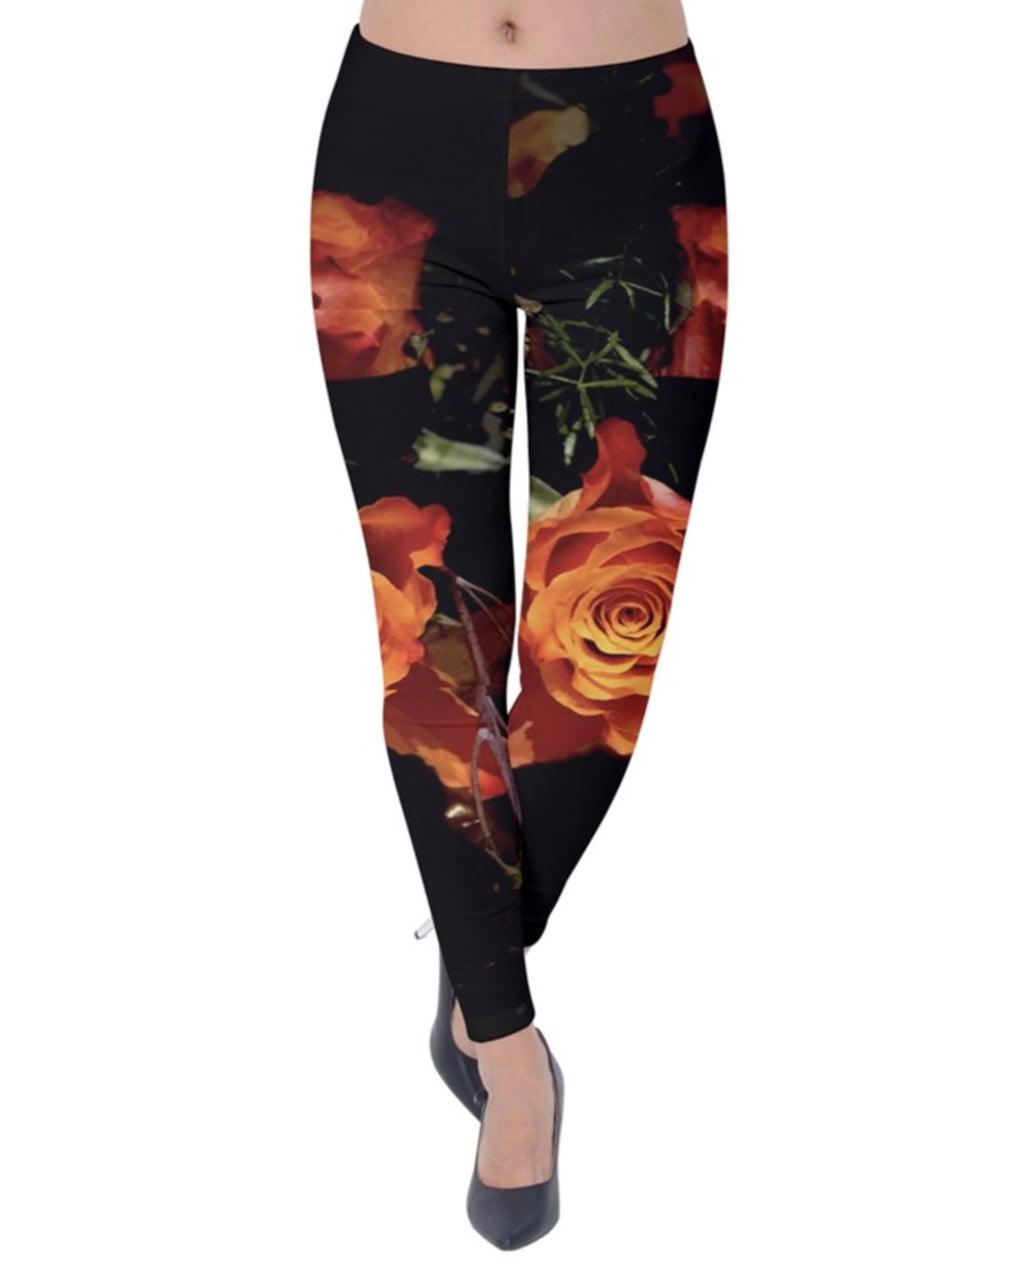 The Orange Rose Velvet Leggings